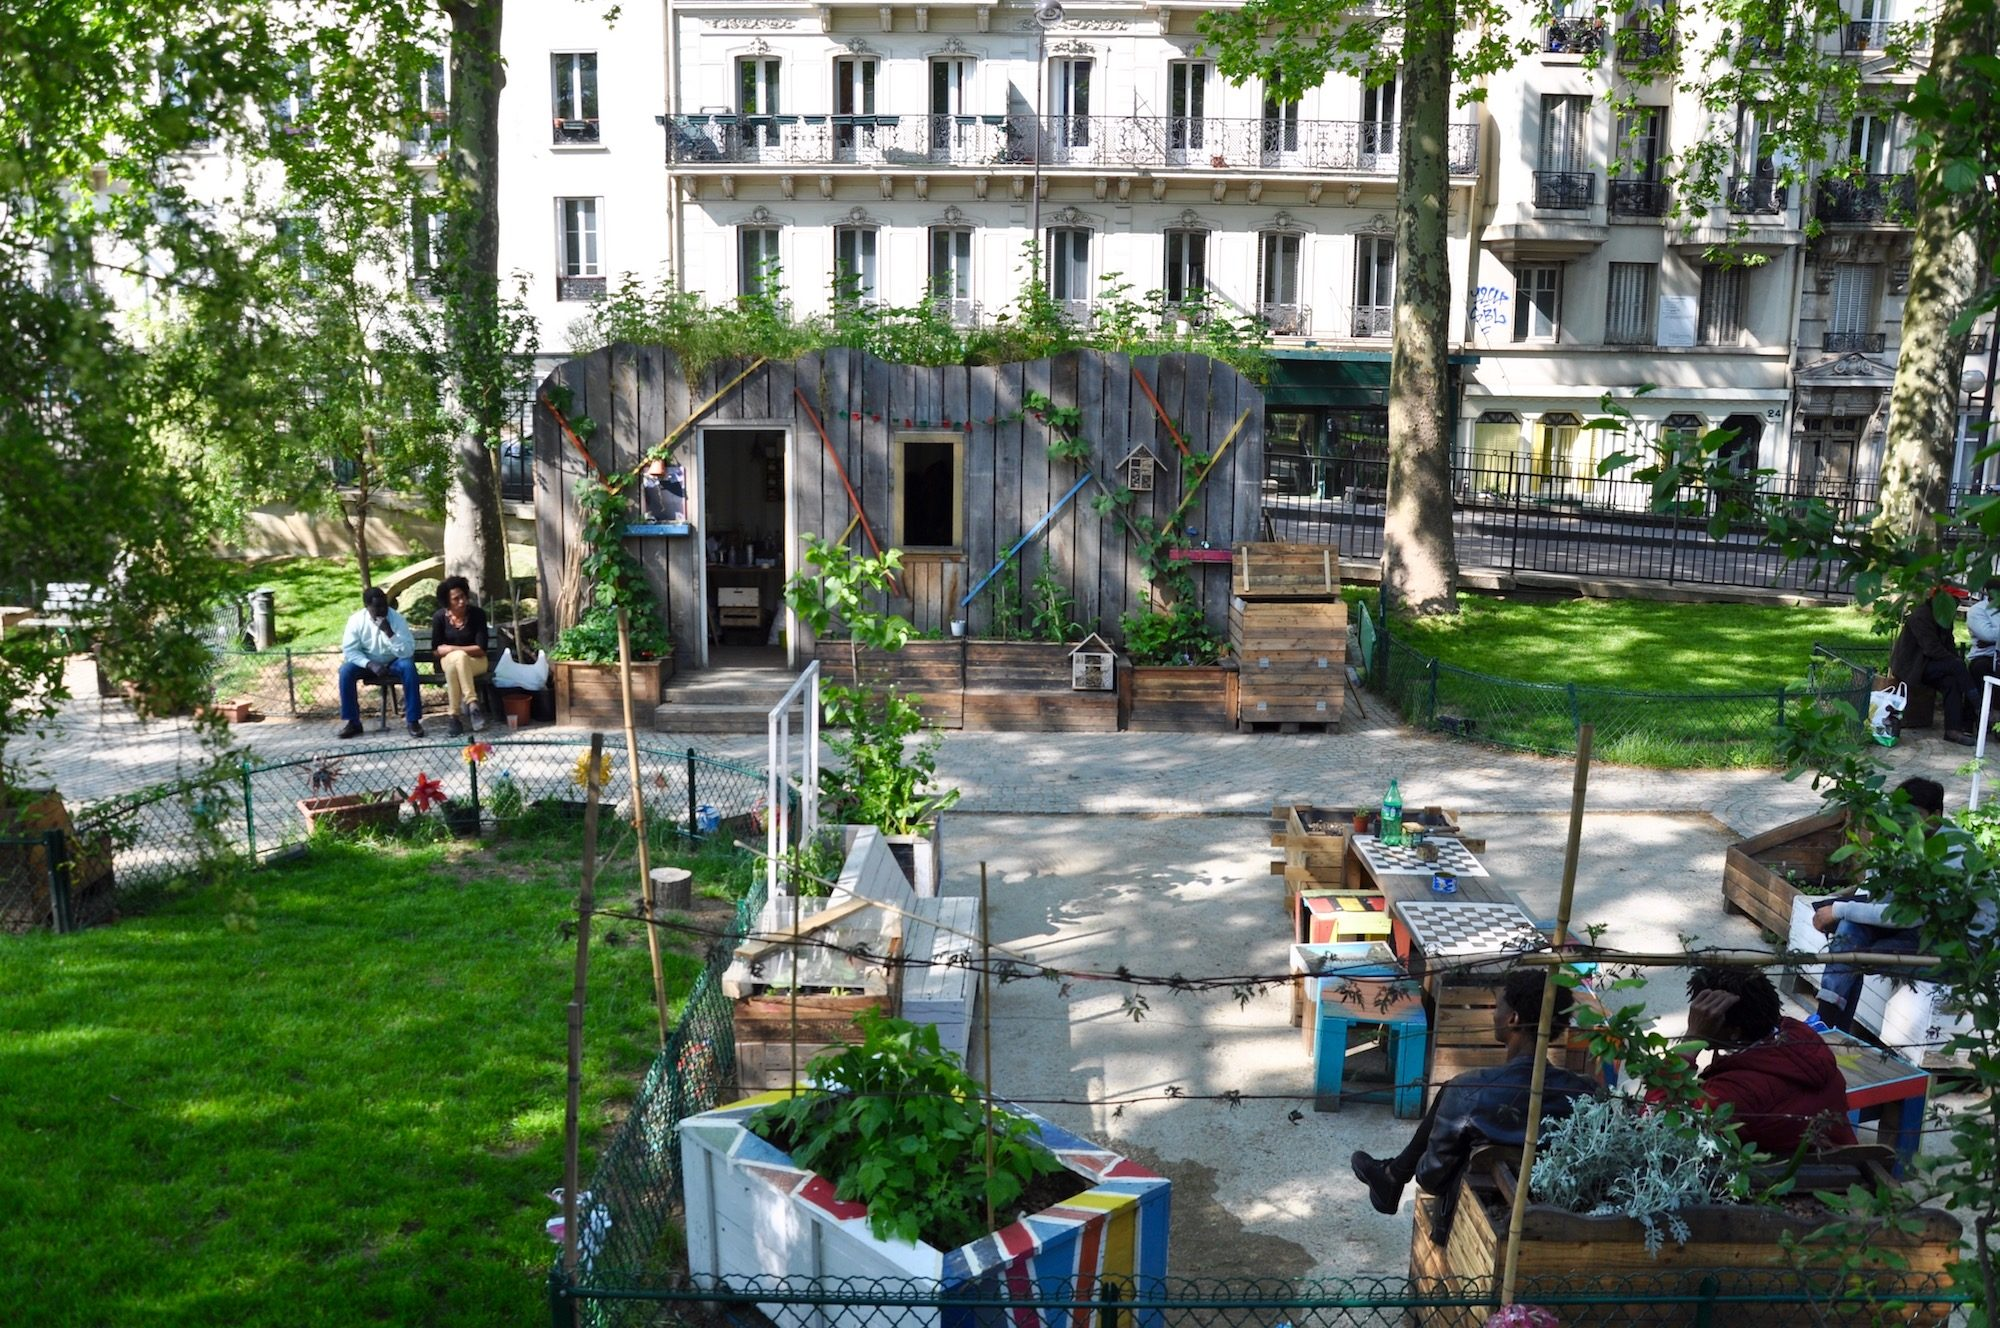 Paris has lots of hidden parks and squares to explore on your second visit to the city.